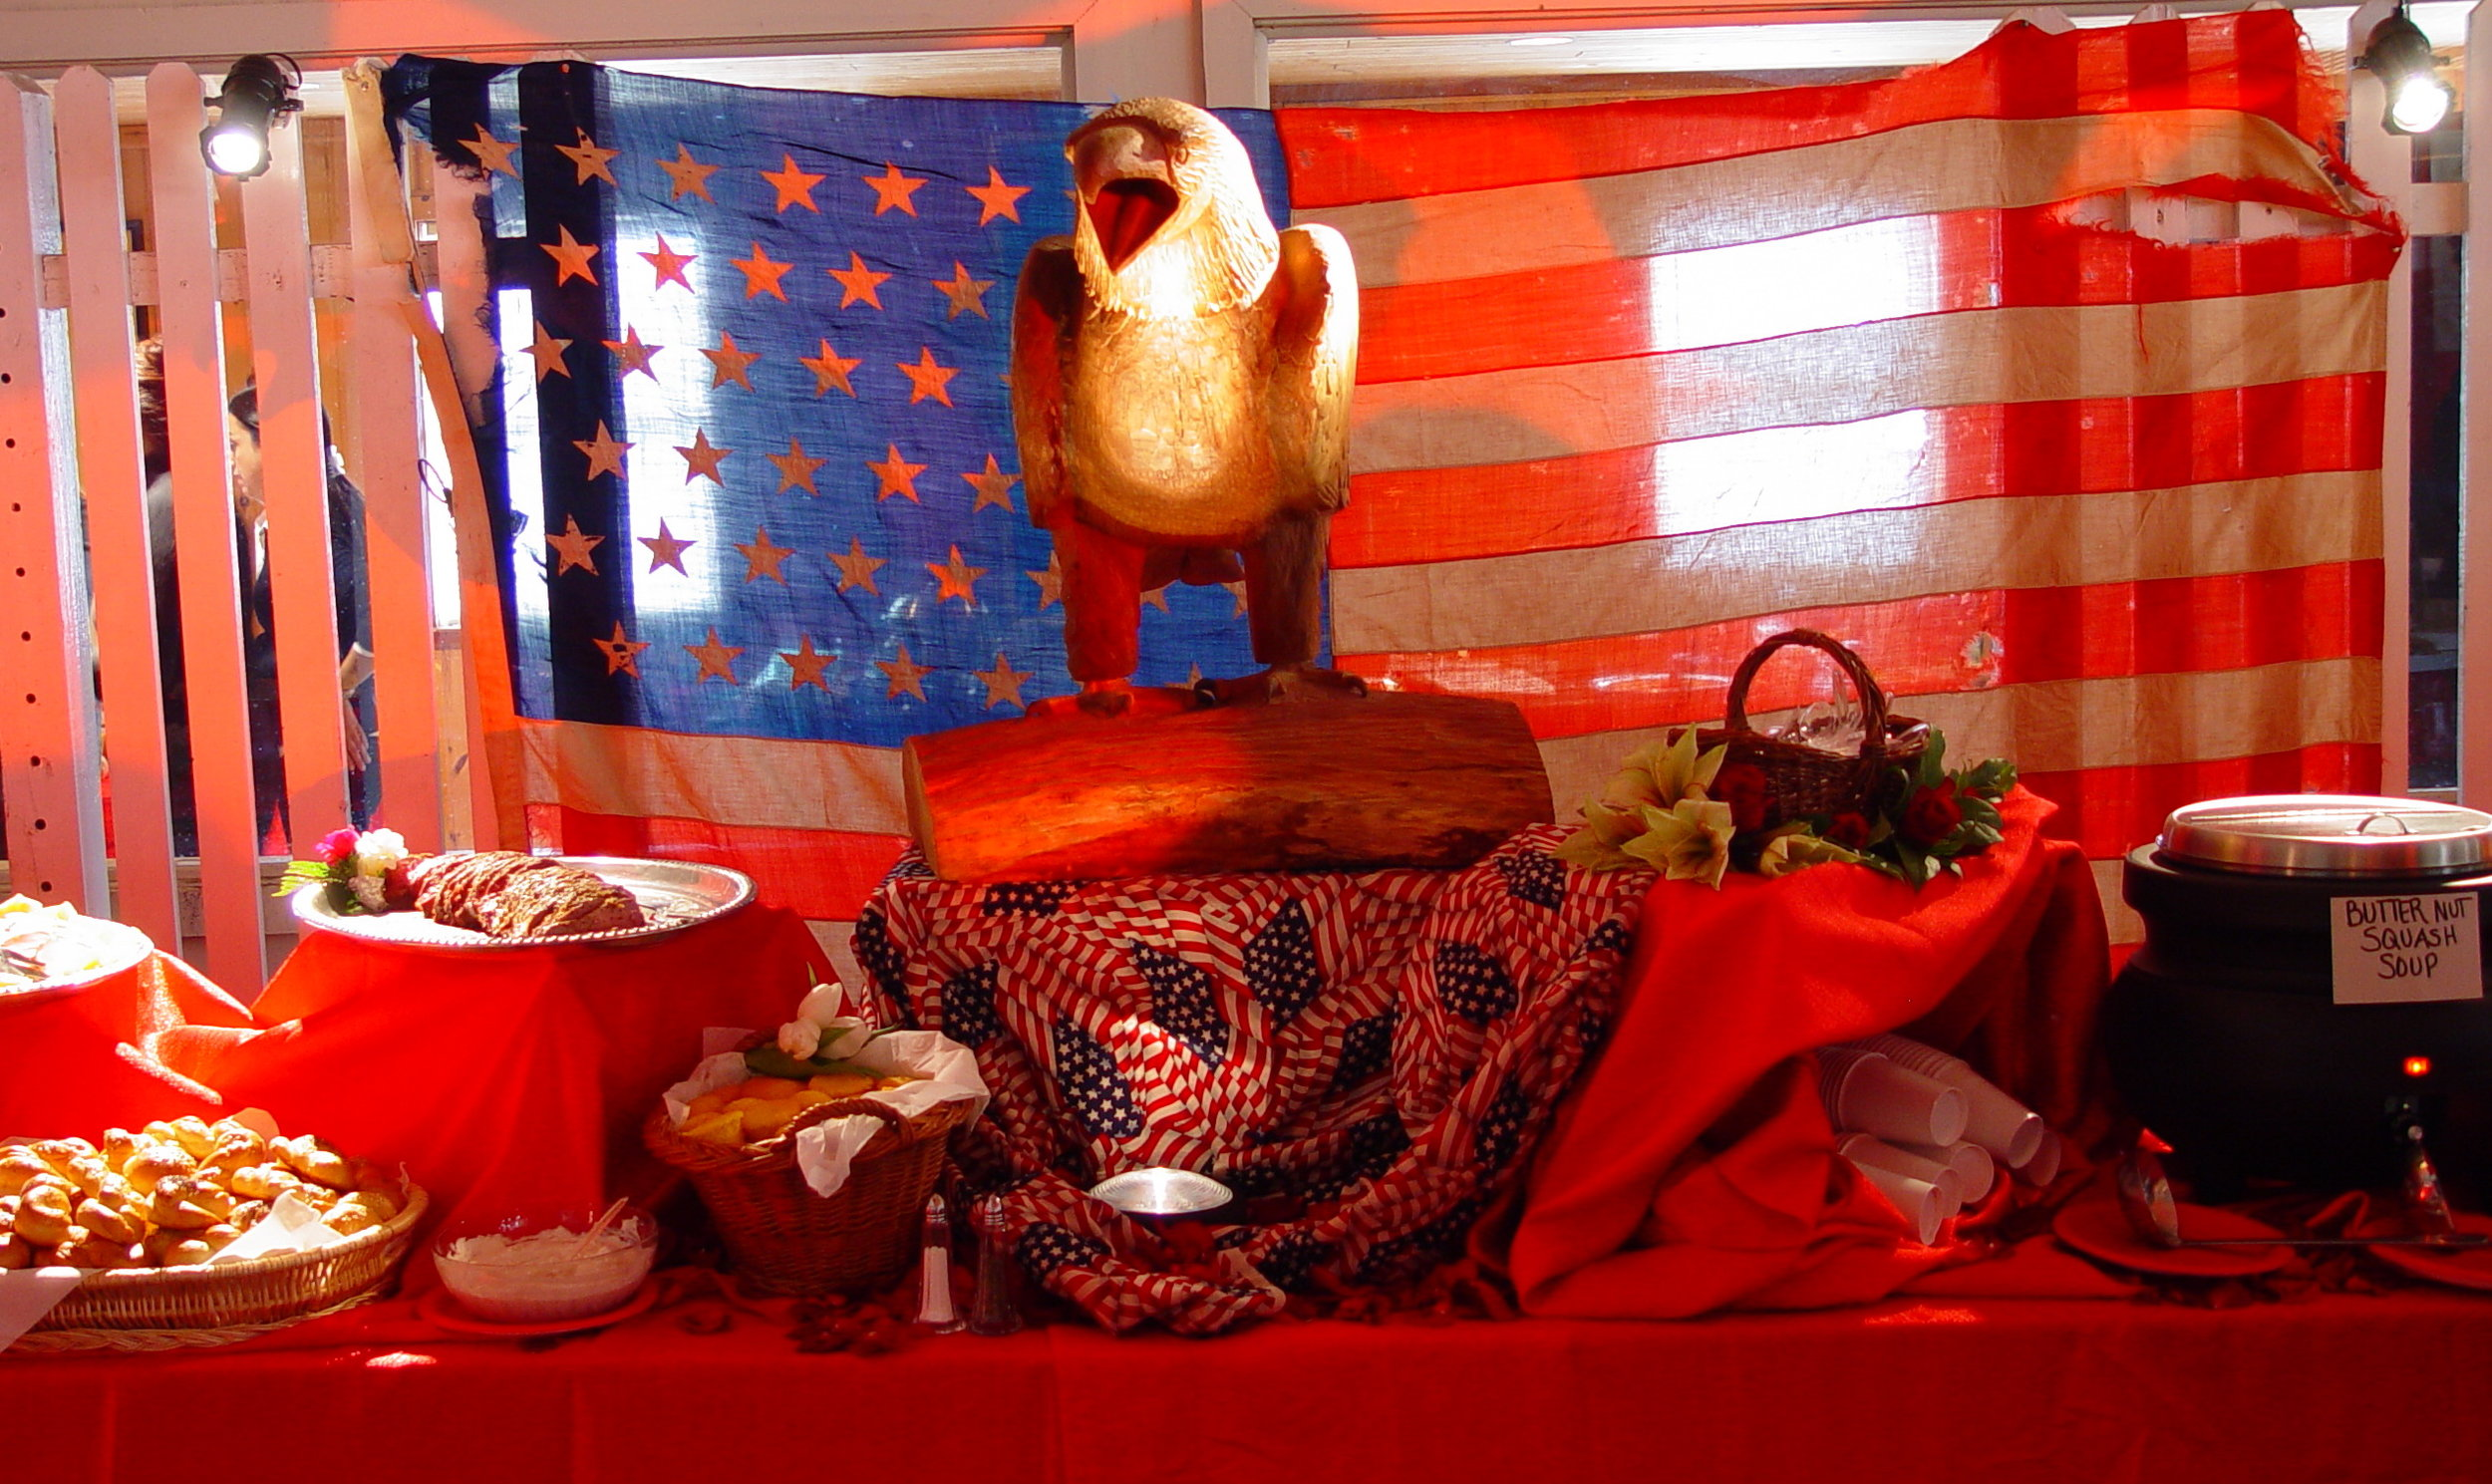 american+decor+props+rentals+international+themed+event+rental+nj+ny+pa+eggsotic+events.jpg